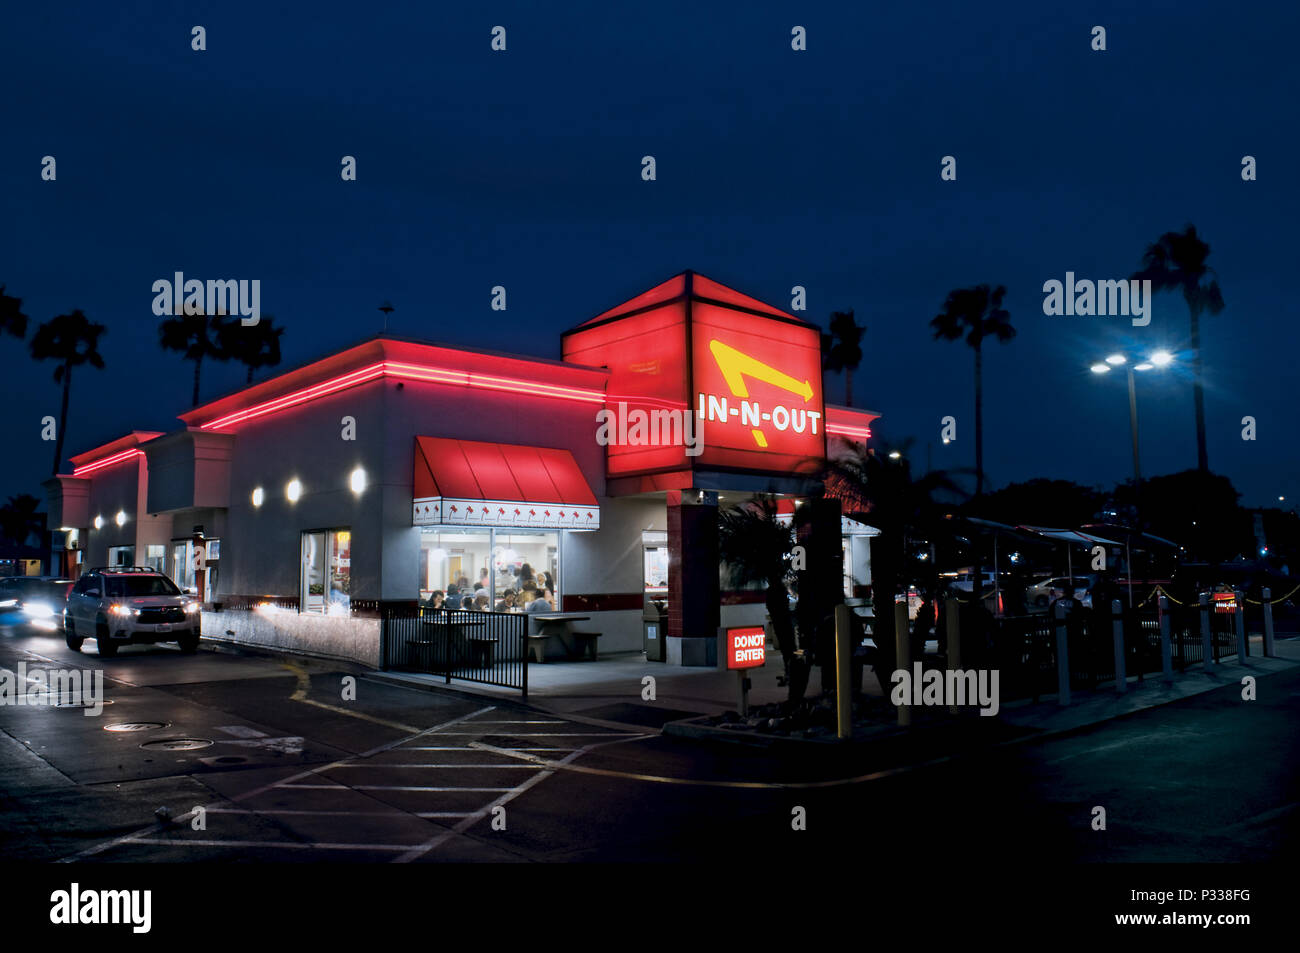 In-N-Out Restaurant at LAX Airport Los Angeles, California - Stock Image